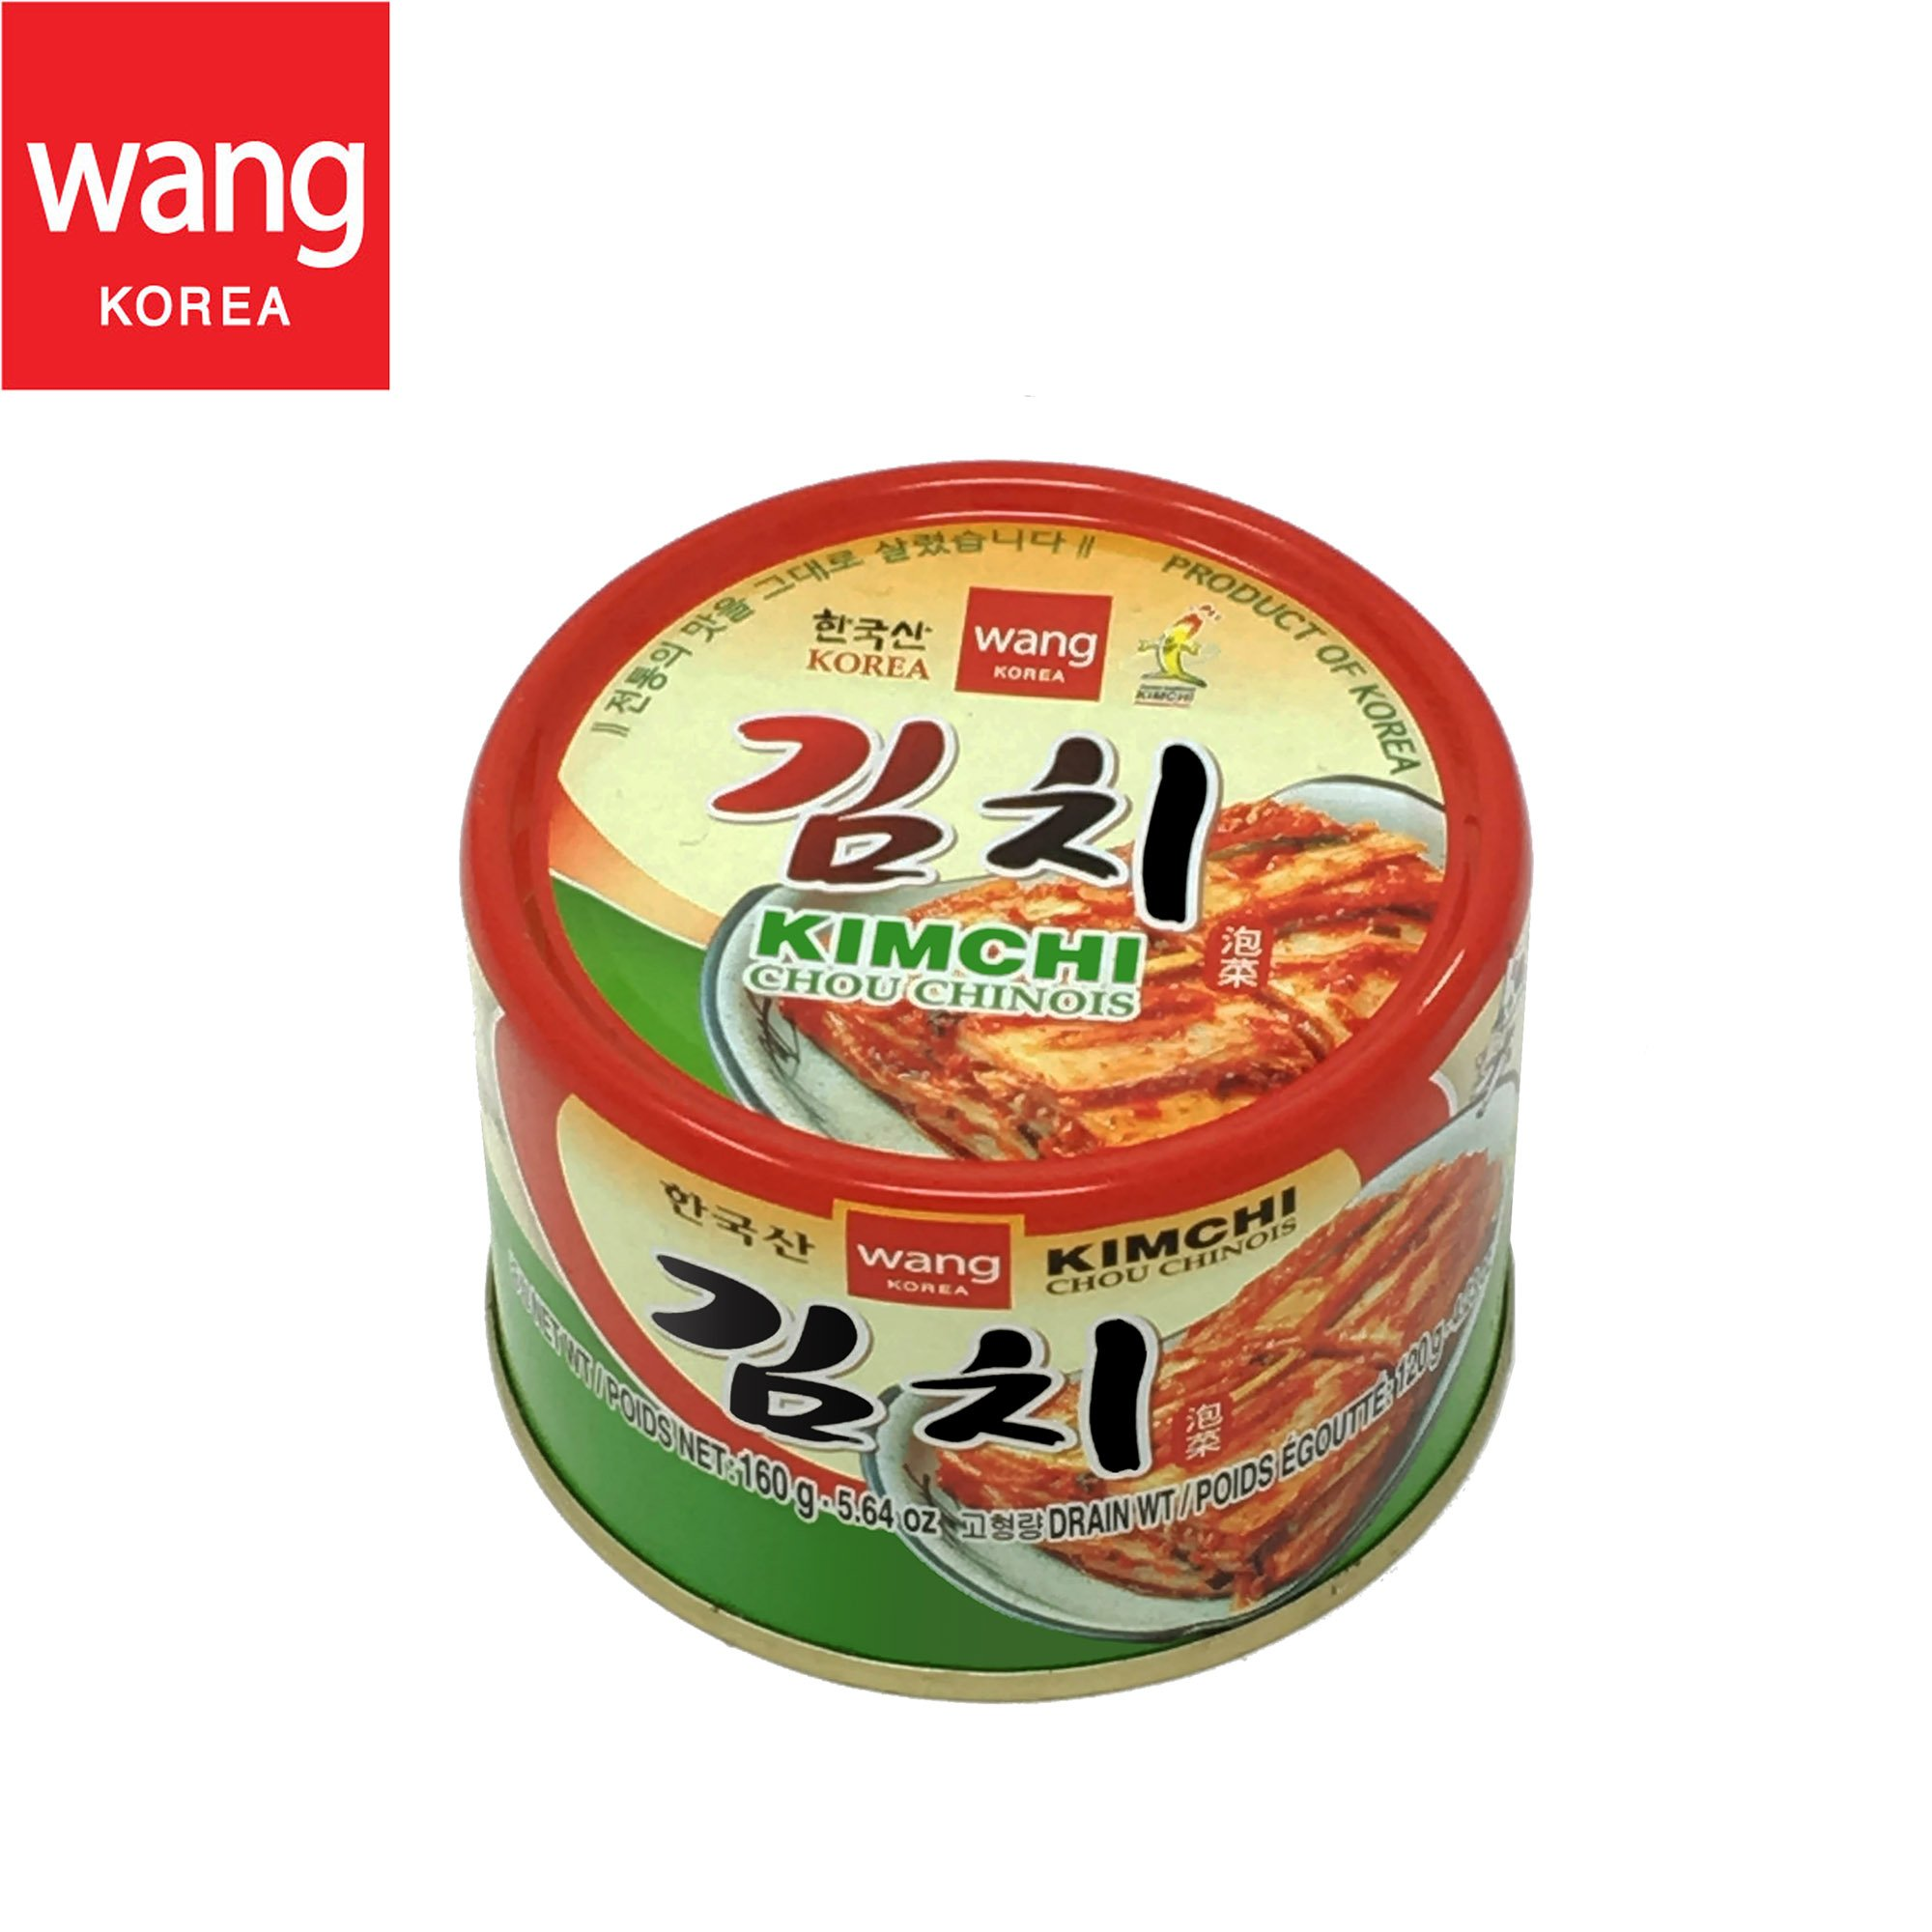 Korean Canned Kimchi, Original Authentic Tasteful Can Napa Cabbage Kim Chi Condiment, Vegan Gluten Free [No Preservatives] - 5.64 oz (1 Can)